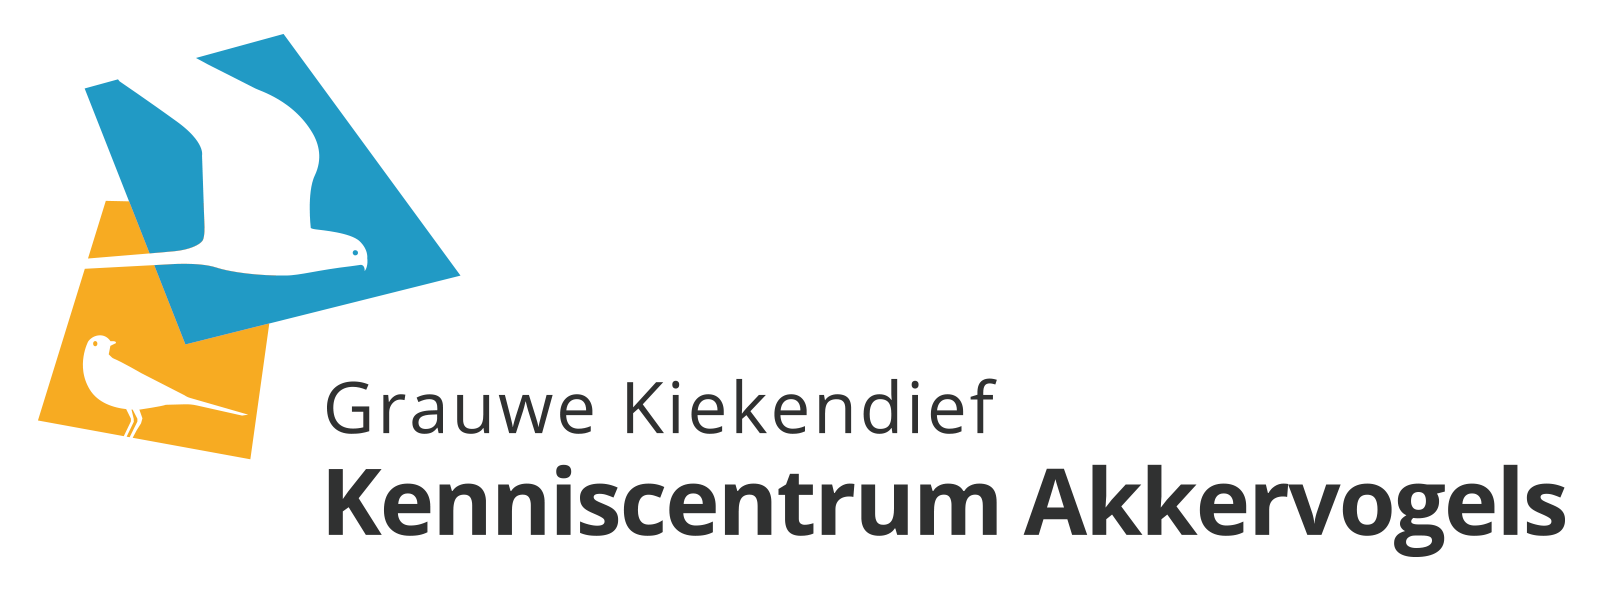 Grauwe Kiekendief, Kenniscentrum Akkervogels